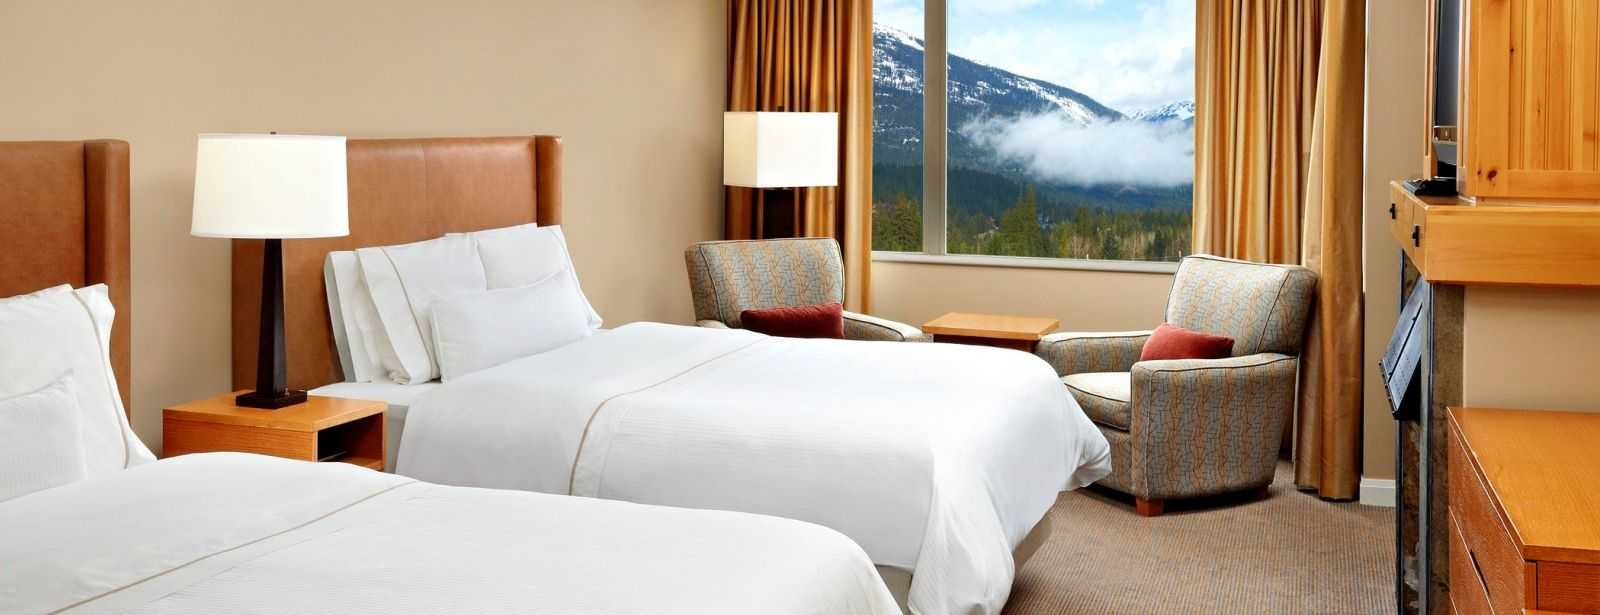 The Westin Resort & Spa, Whistler - Deluxe Studio Suites